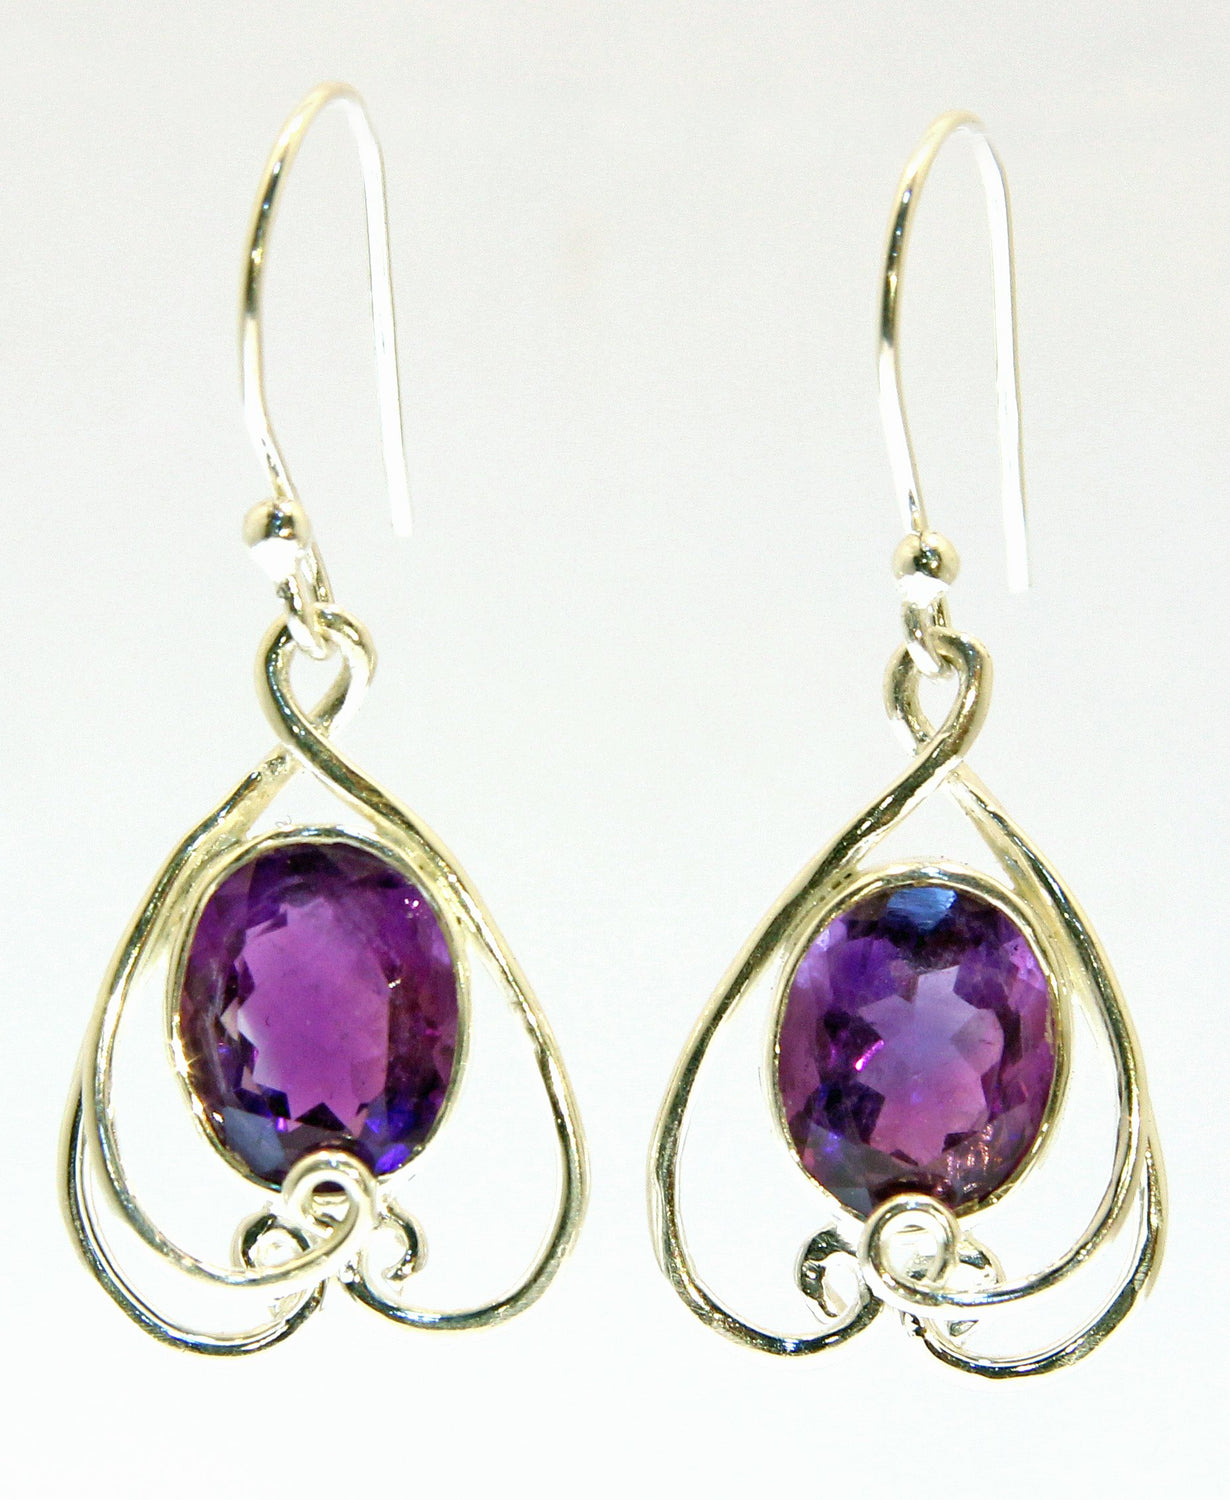 Sterling Silver Amethyst Earrings - Available in 2 Stones